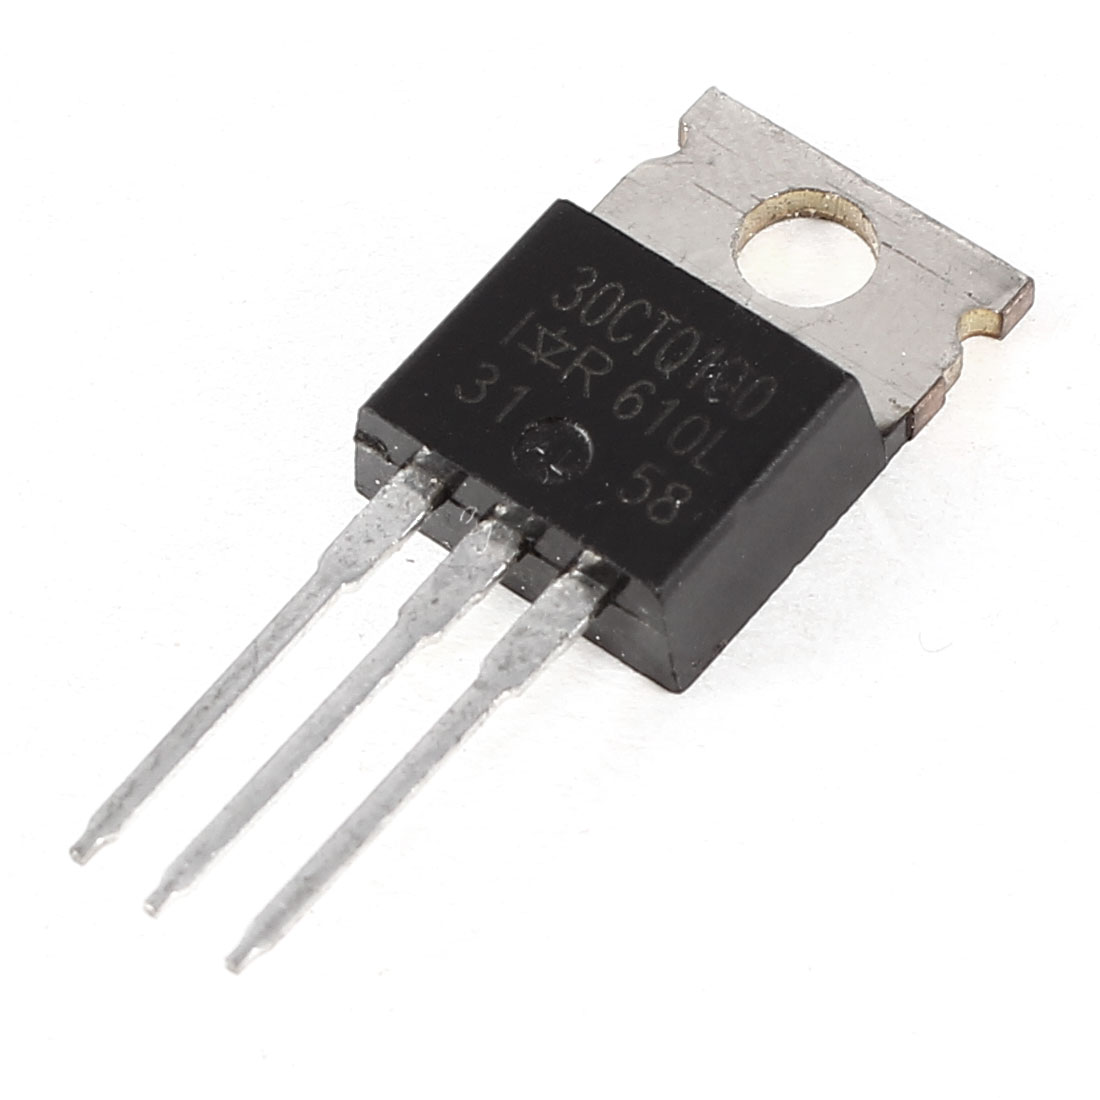 30CTQ100 80-100V 30A High Voltage Current NPN Power Transistor Spare Parts